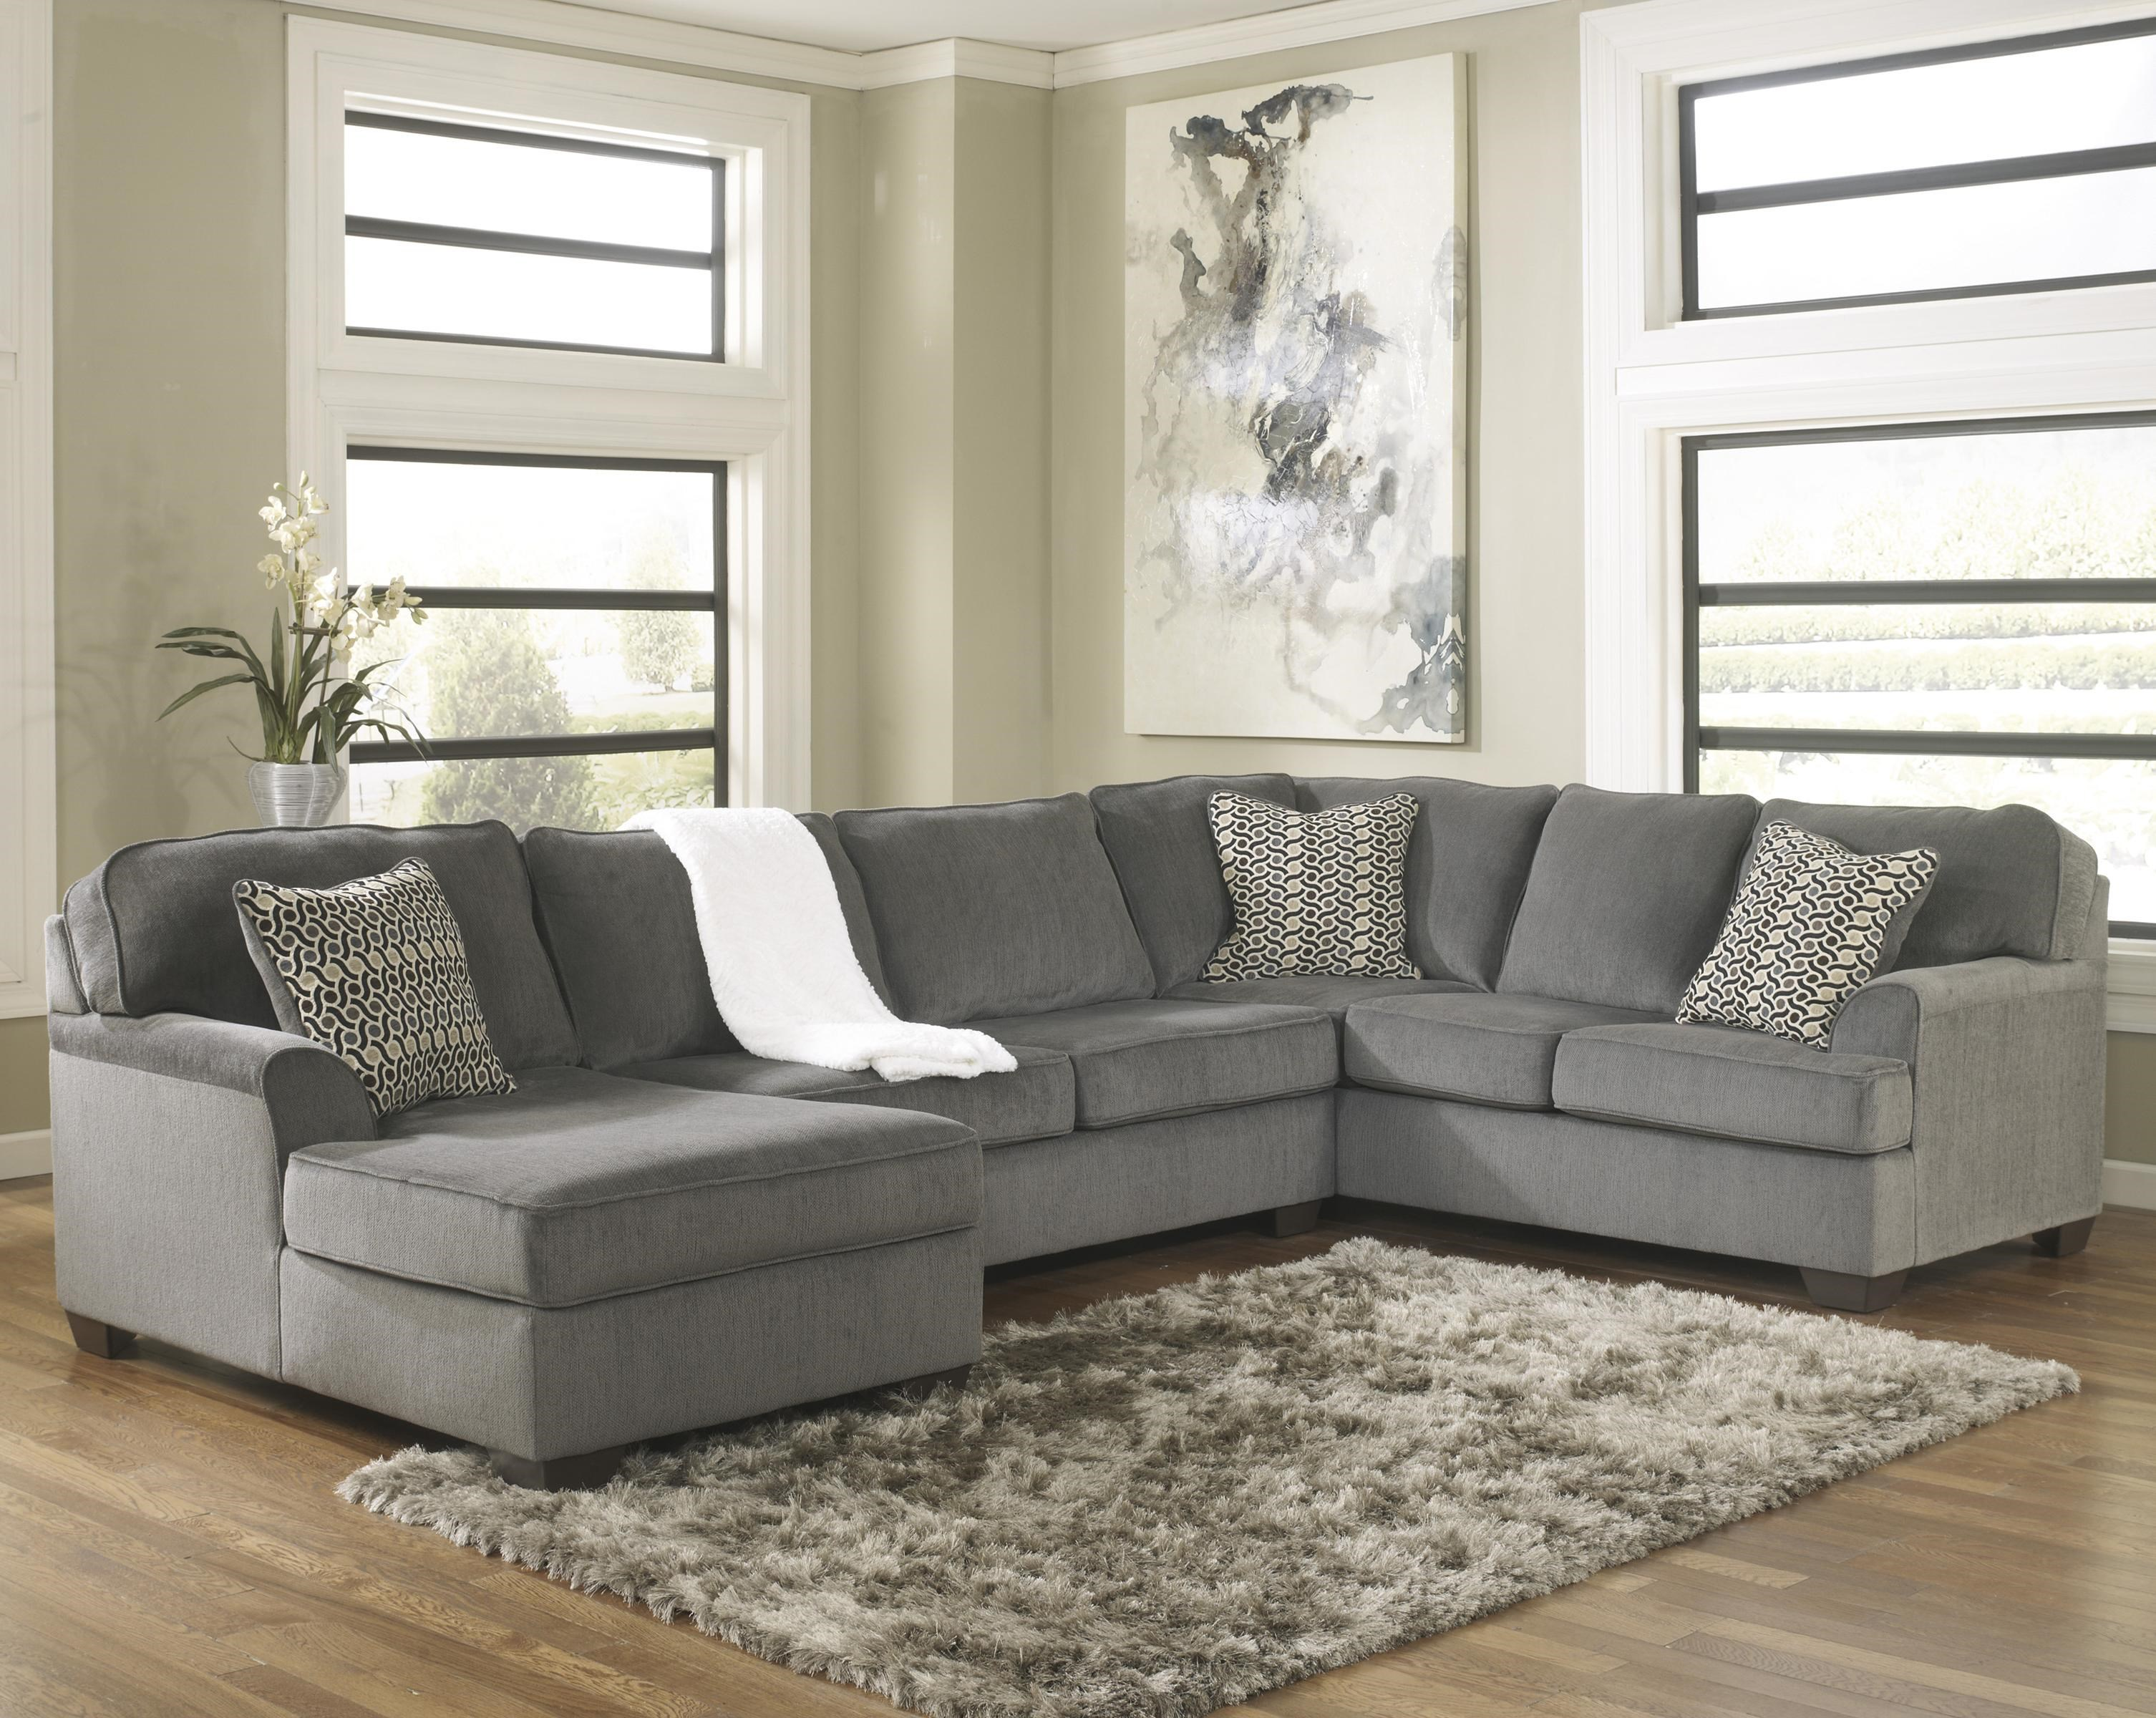 Ashley Furniture Loric   SmokeContemporary 3 Piece Sectional With Chaise ...